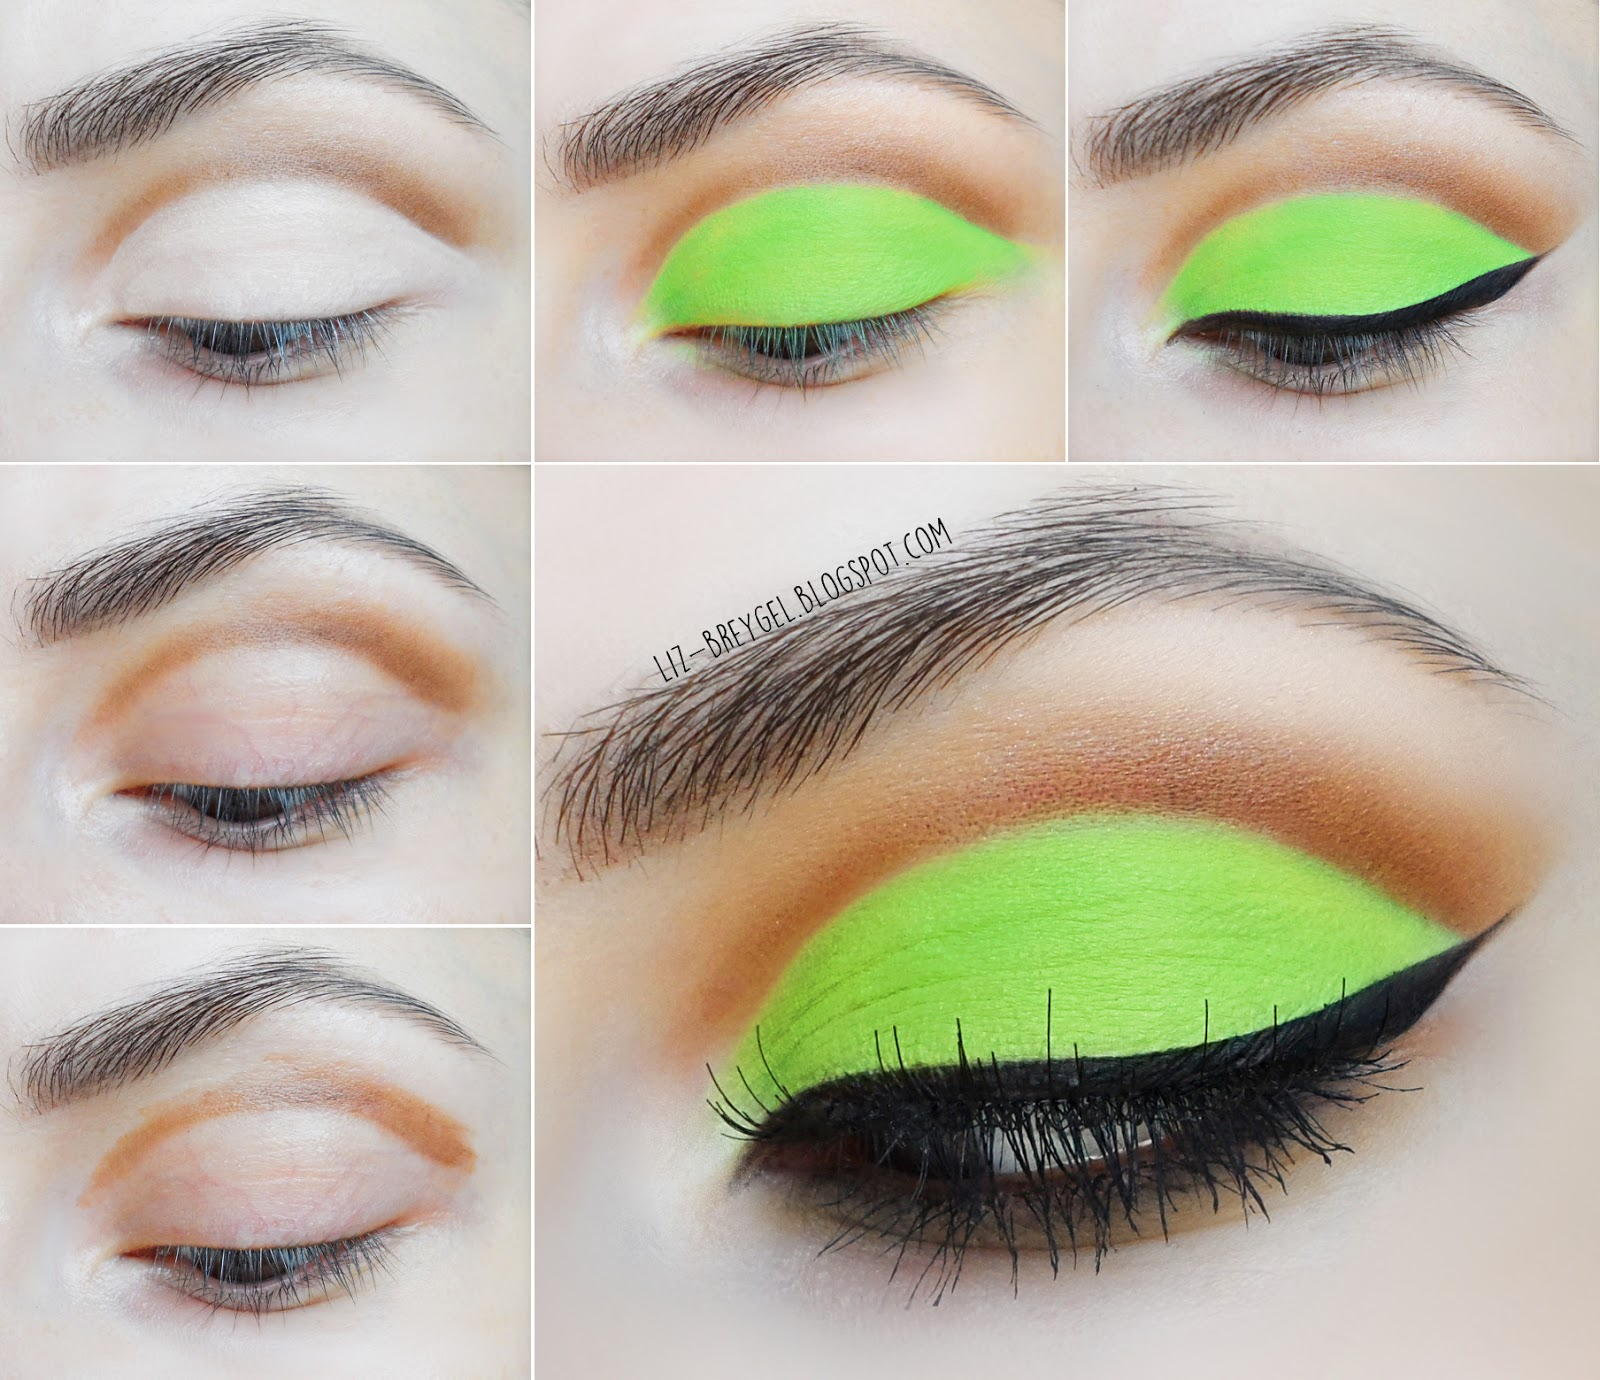 liz breygel blogger makeup bright matte green step by step tutorial cat eyeliner pictures